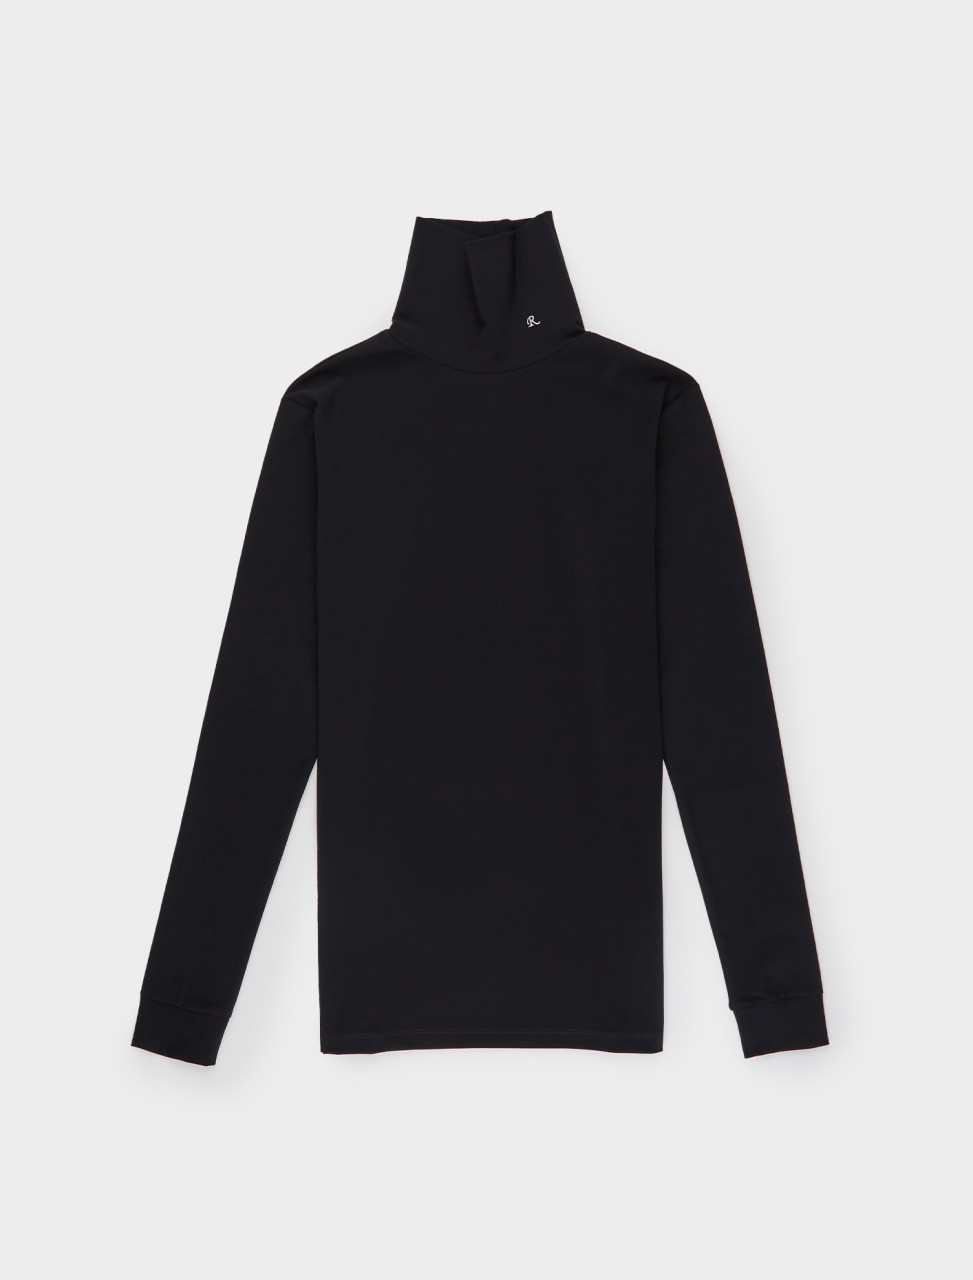 162-202-151-19016-00099 RAF SIMONS SOUS PULL W STANDING UP COLLAR BLACK